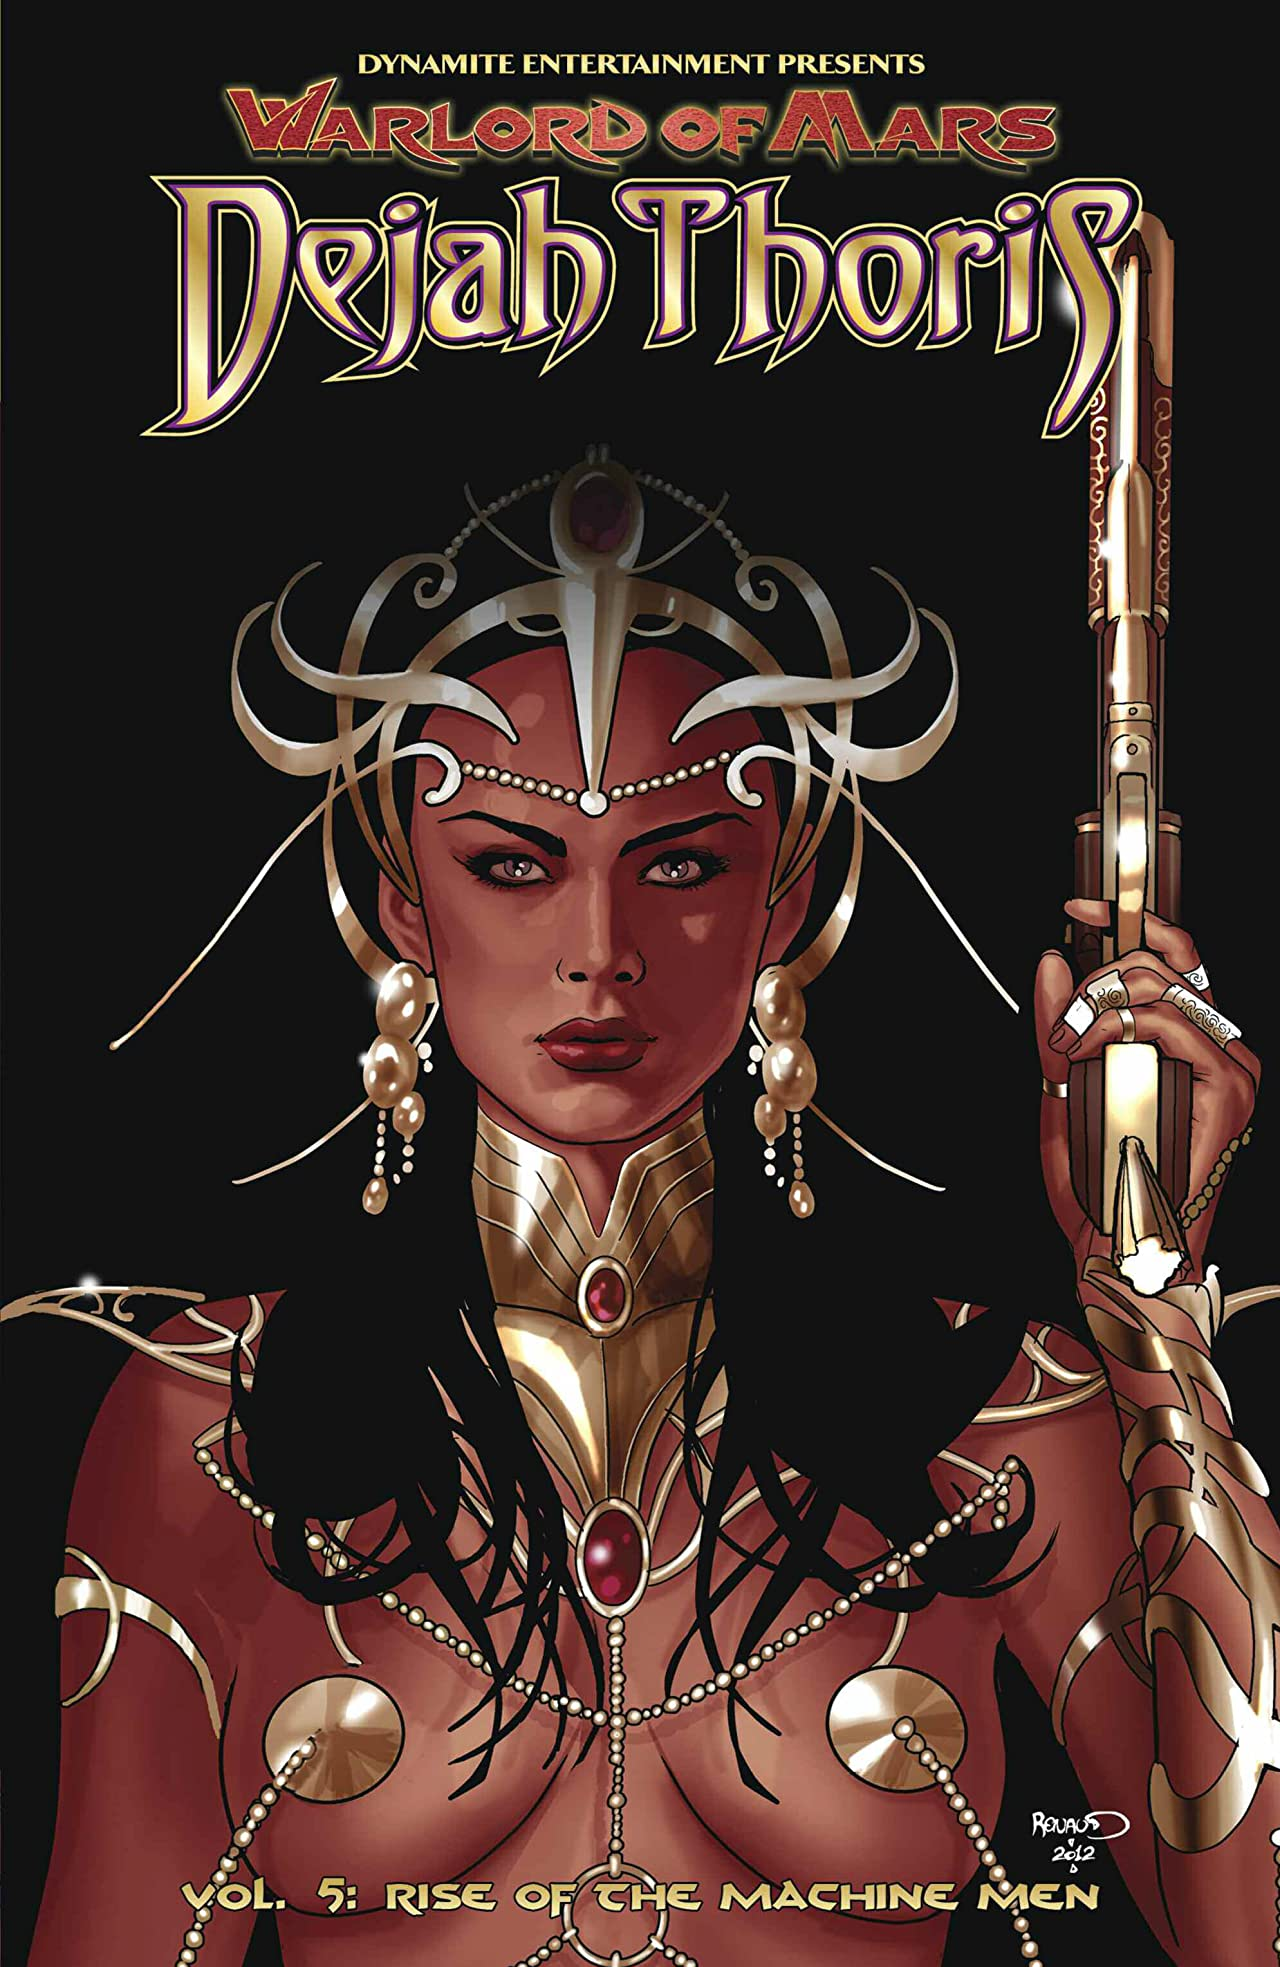 Warlord of Mars: Dejah Thoris Vol. 5: Rise of the Machine Men